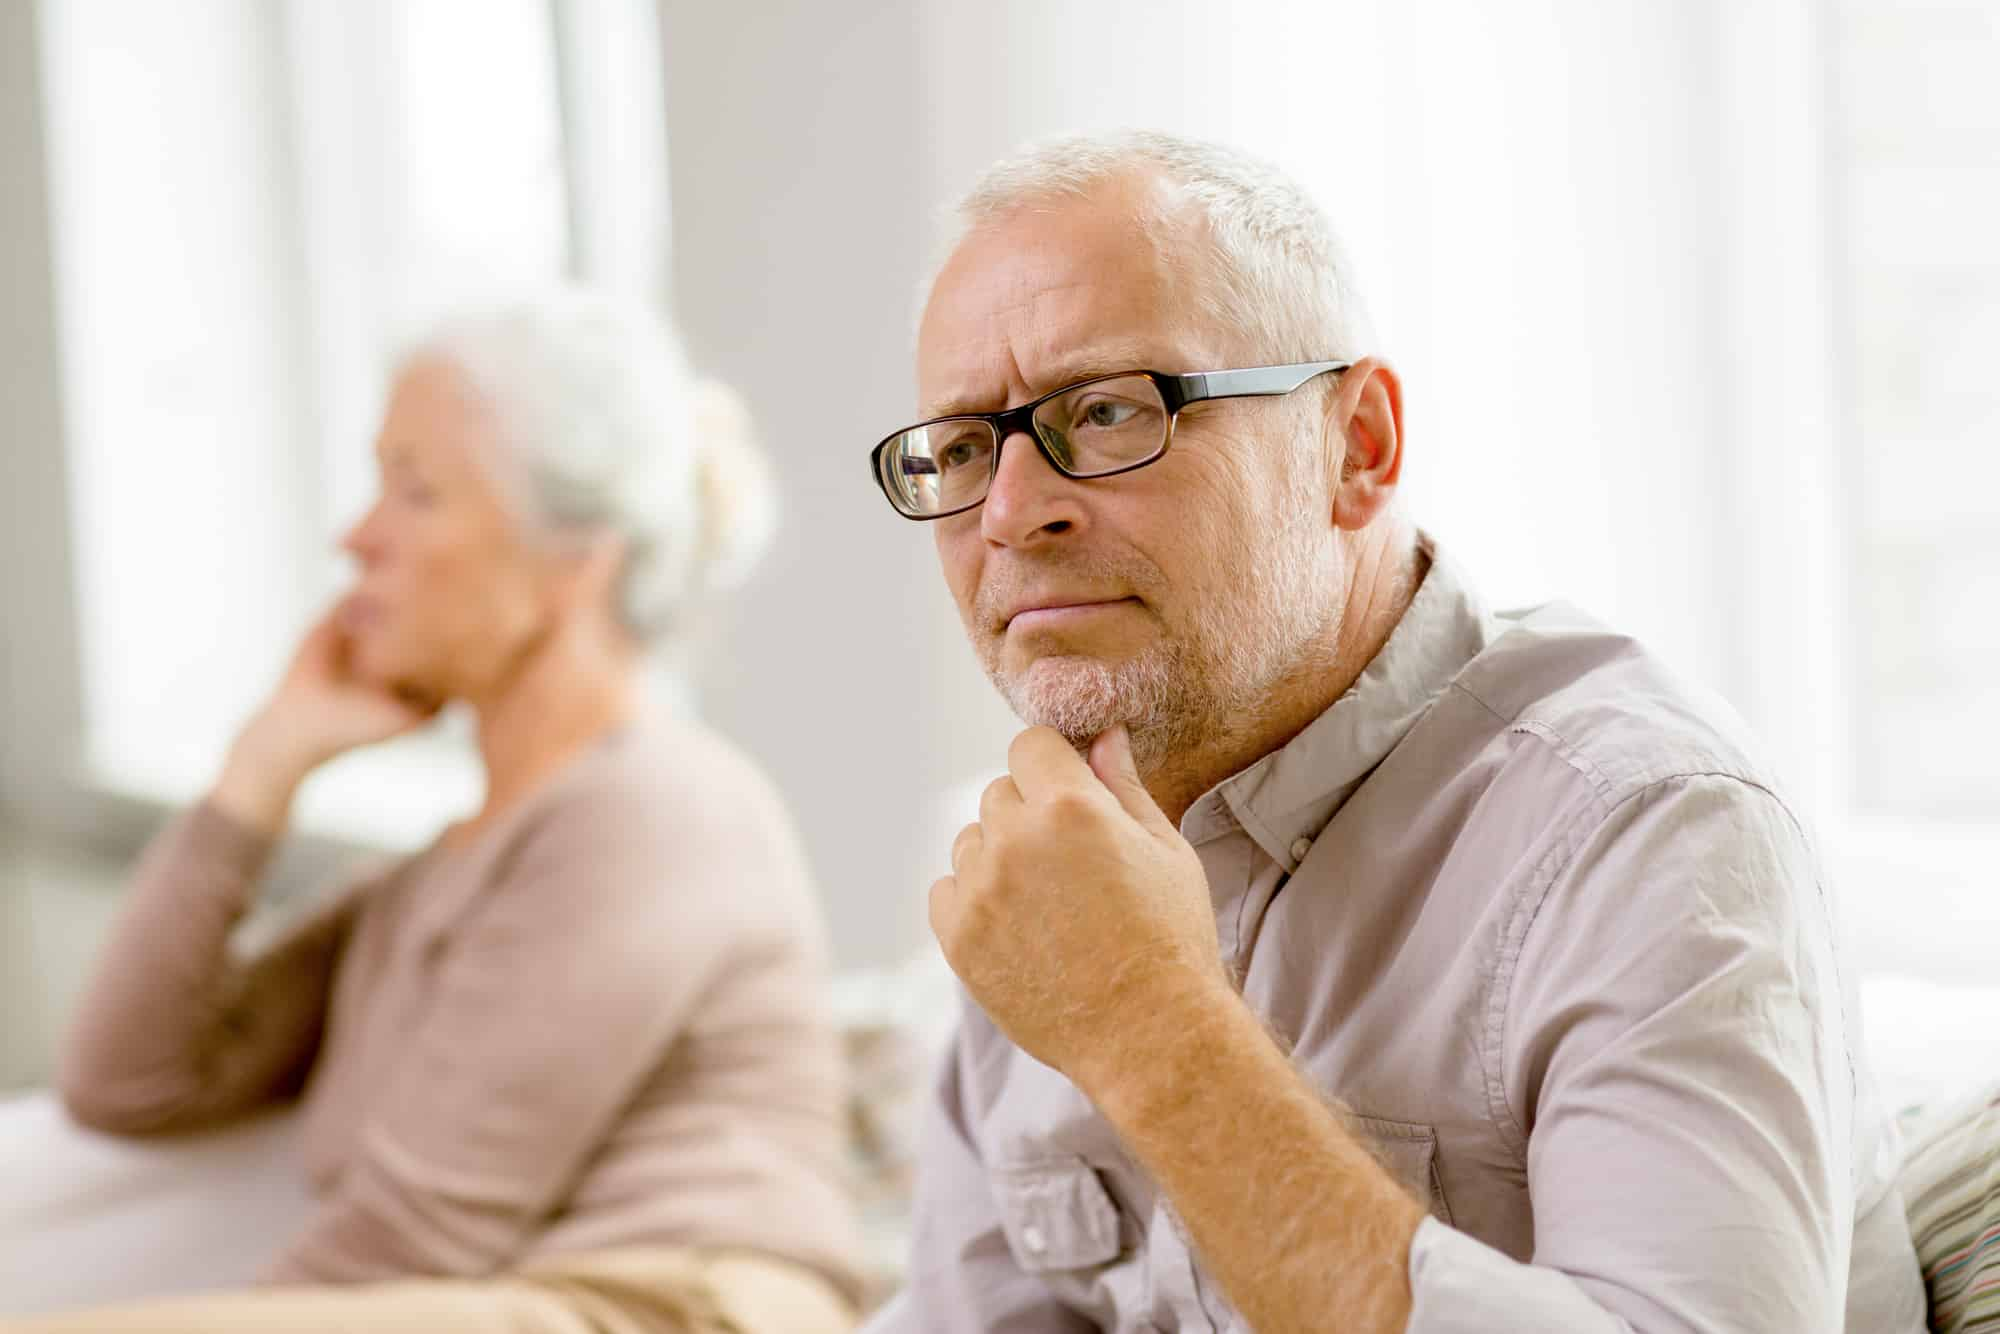 Aging in those with aspergers is uncharted waters, so learn how to help them, while at the same time caring for yourself emotionally – 7/14 teleconference.